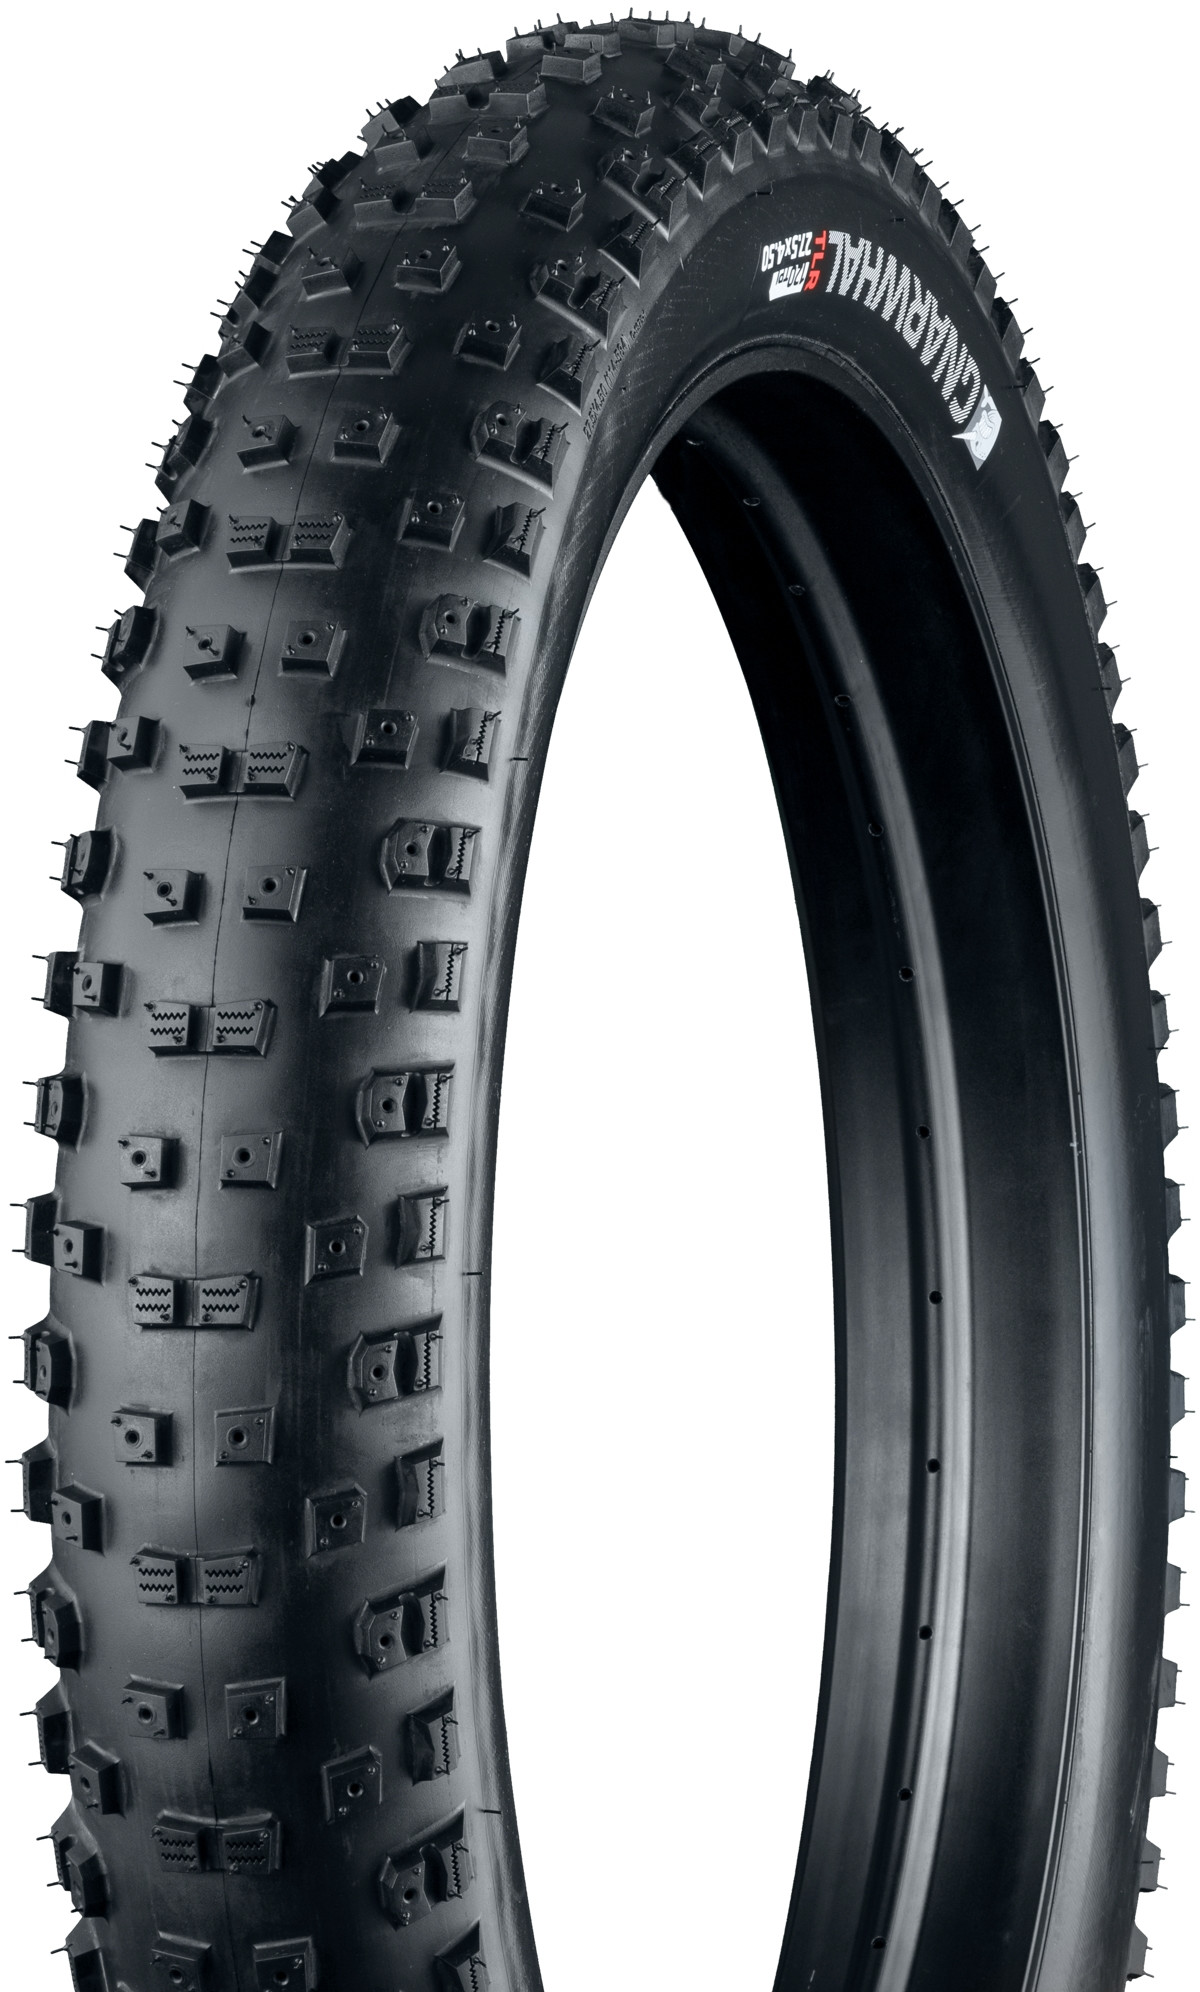 Bontrager Gnarwhal Studded Fat Bike Tire Mtb Tyres